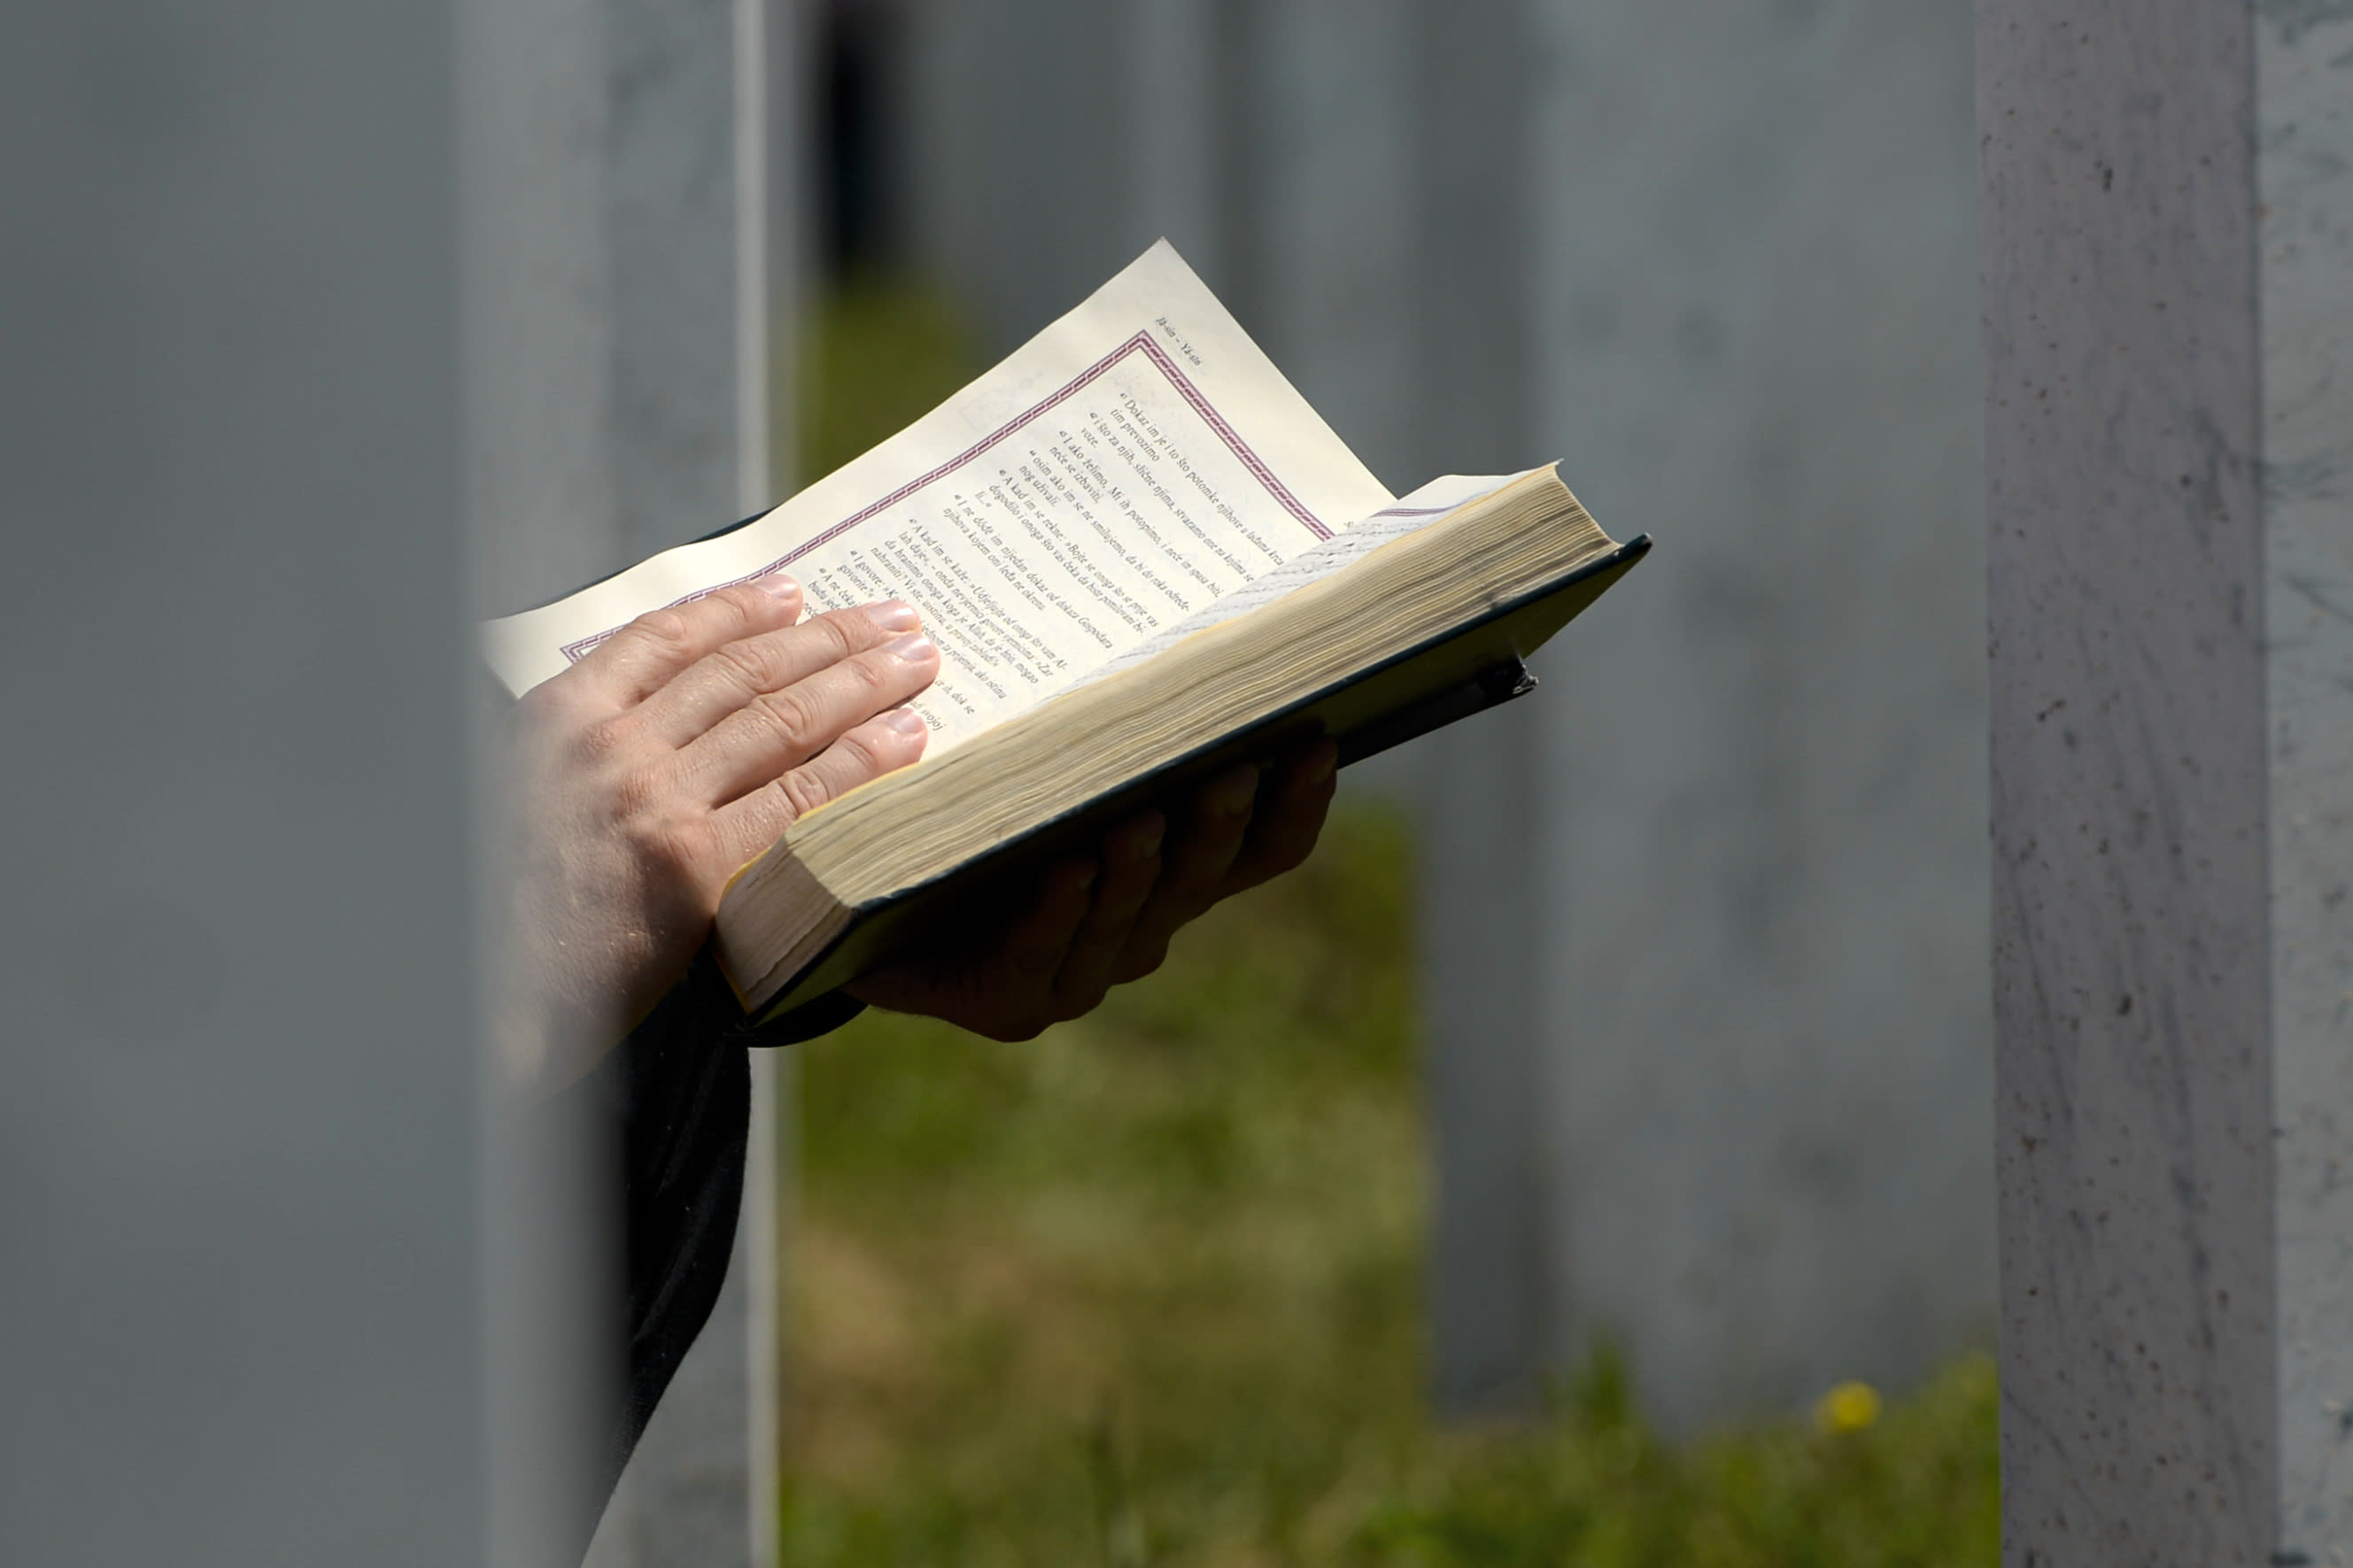 A man prays sitting between grave stones in Potocari, near Srebrenica, Bosnia, Saturday, July 11, 2020. Mourners converged on the eastern Bosnian town of Srebrenica for the 25th anniversary of the country's worst carnage during the 1992-95 war and the only crime in Europe since World War II that has been declared a genocide. (AP Photo/Kemal Softic)